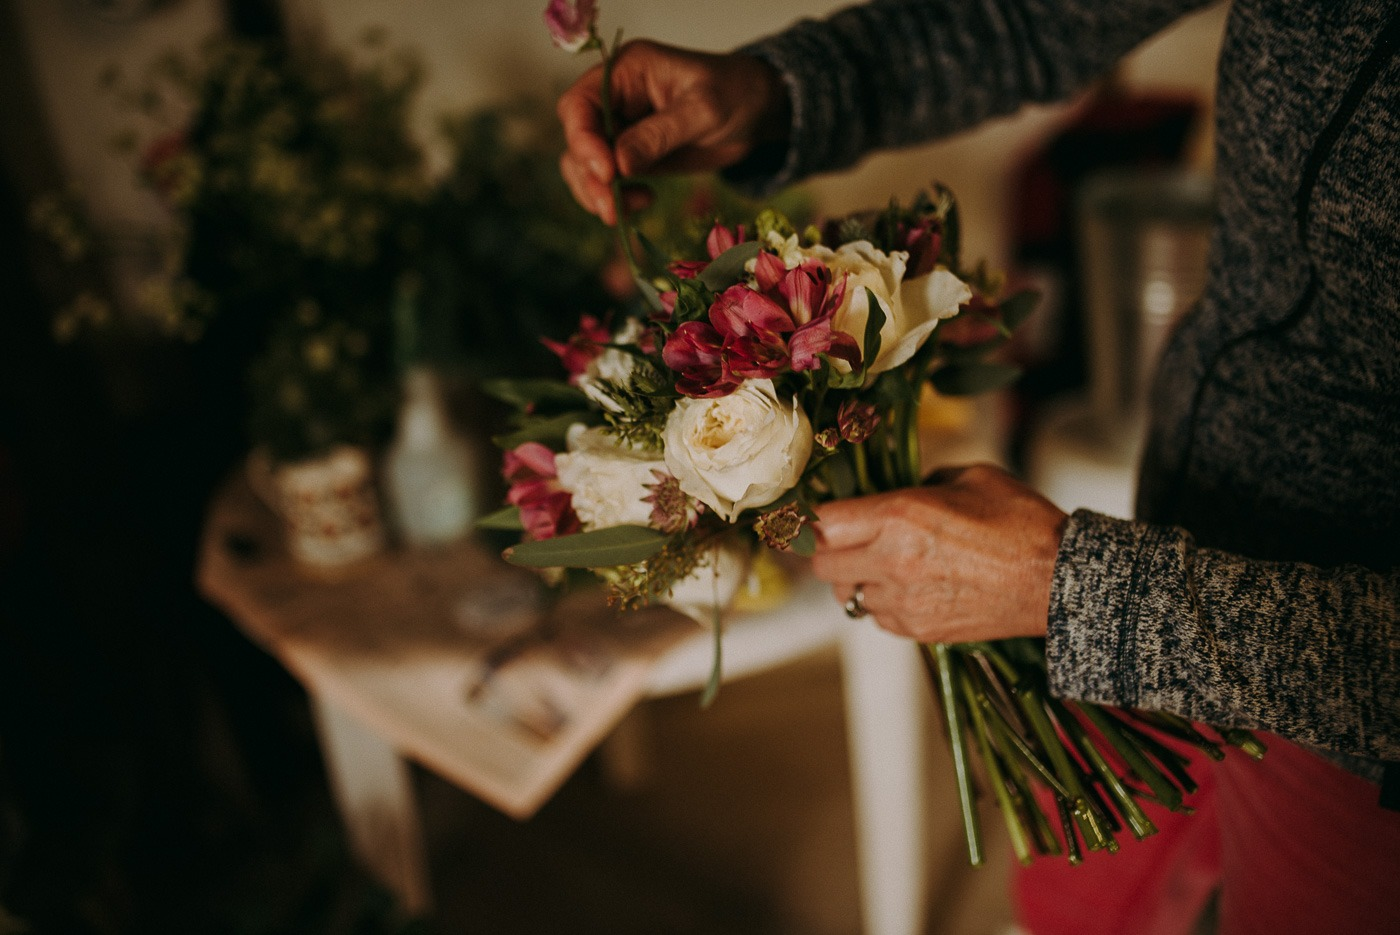 A person holding a vase of flowers on a table